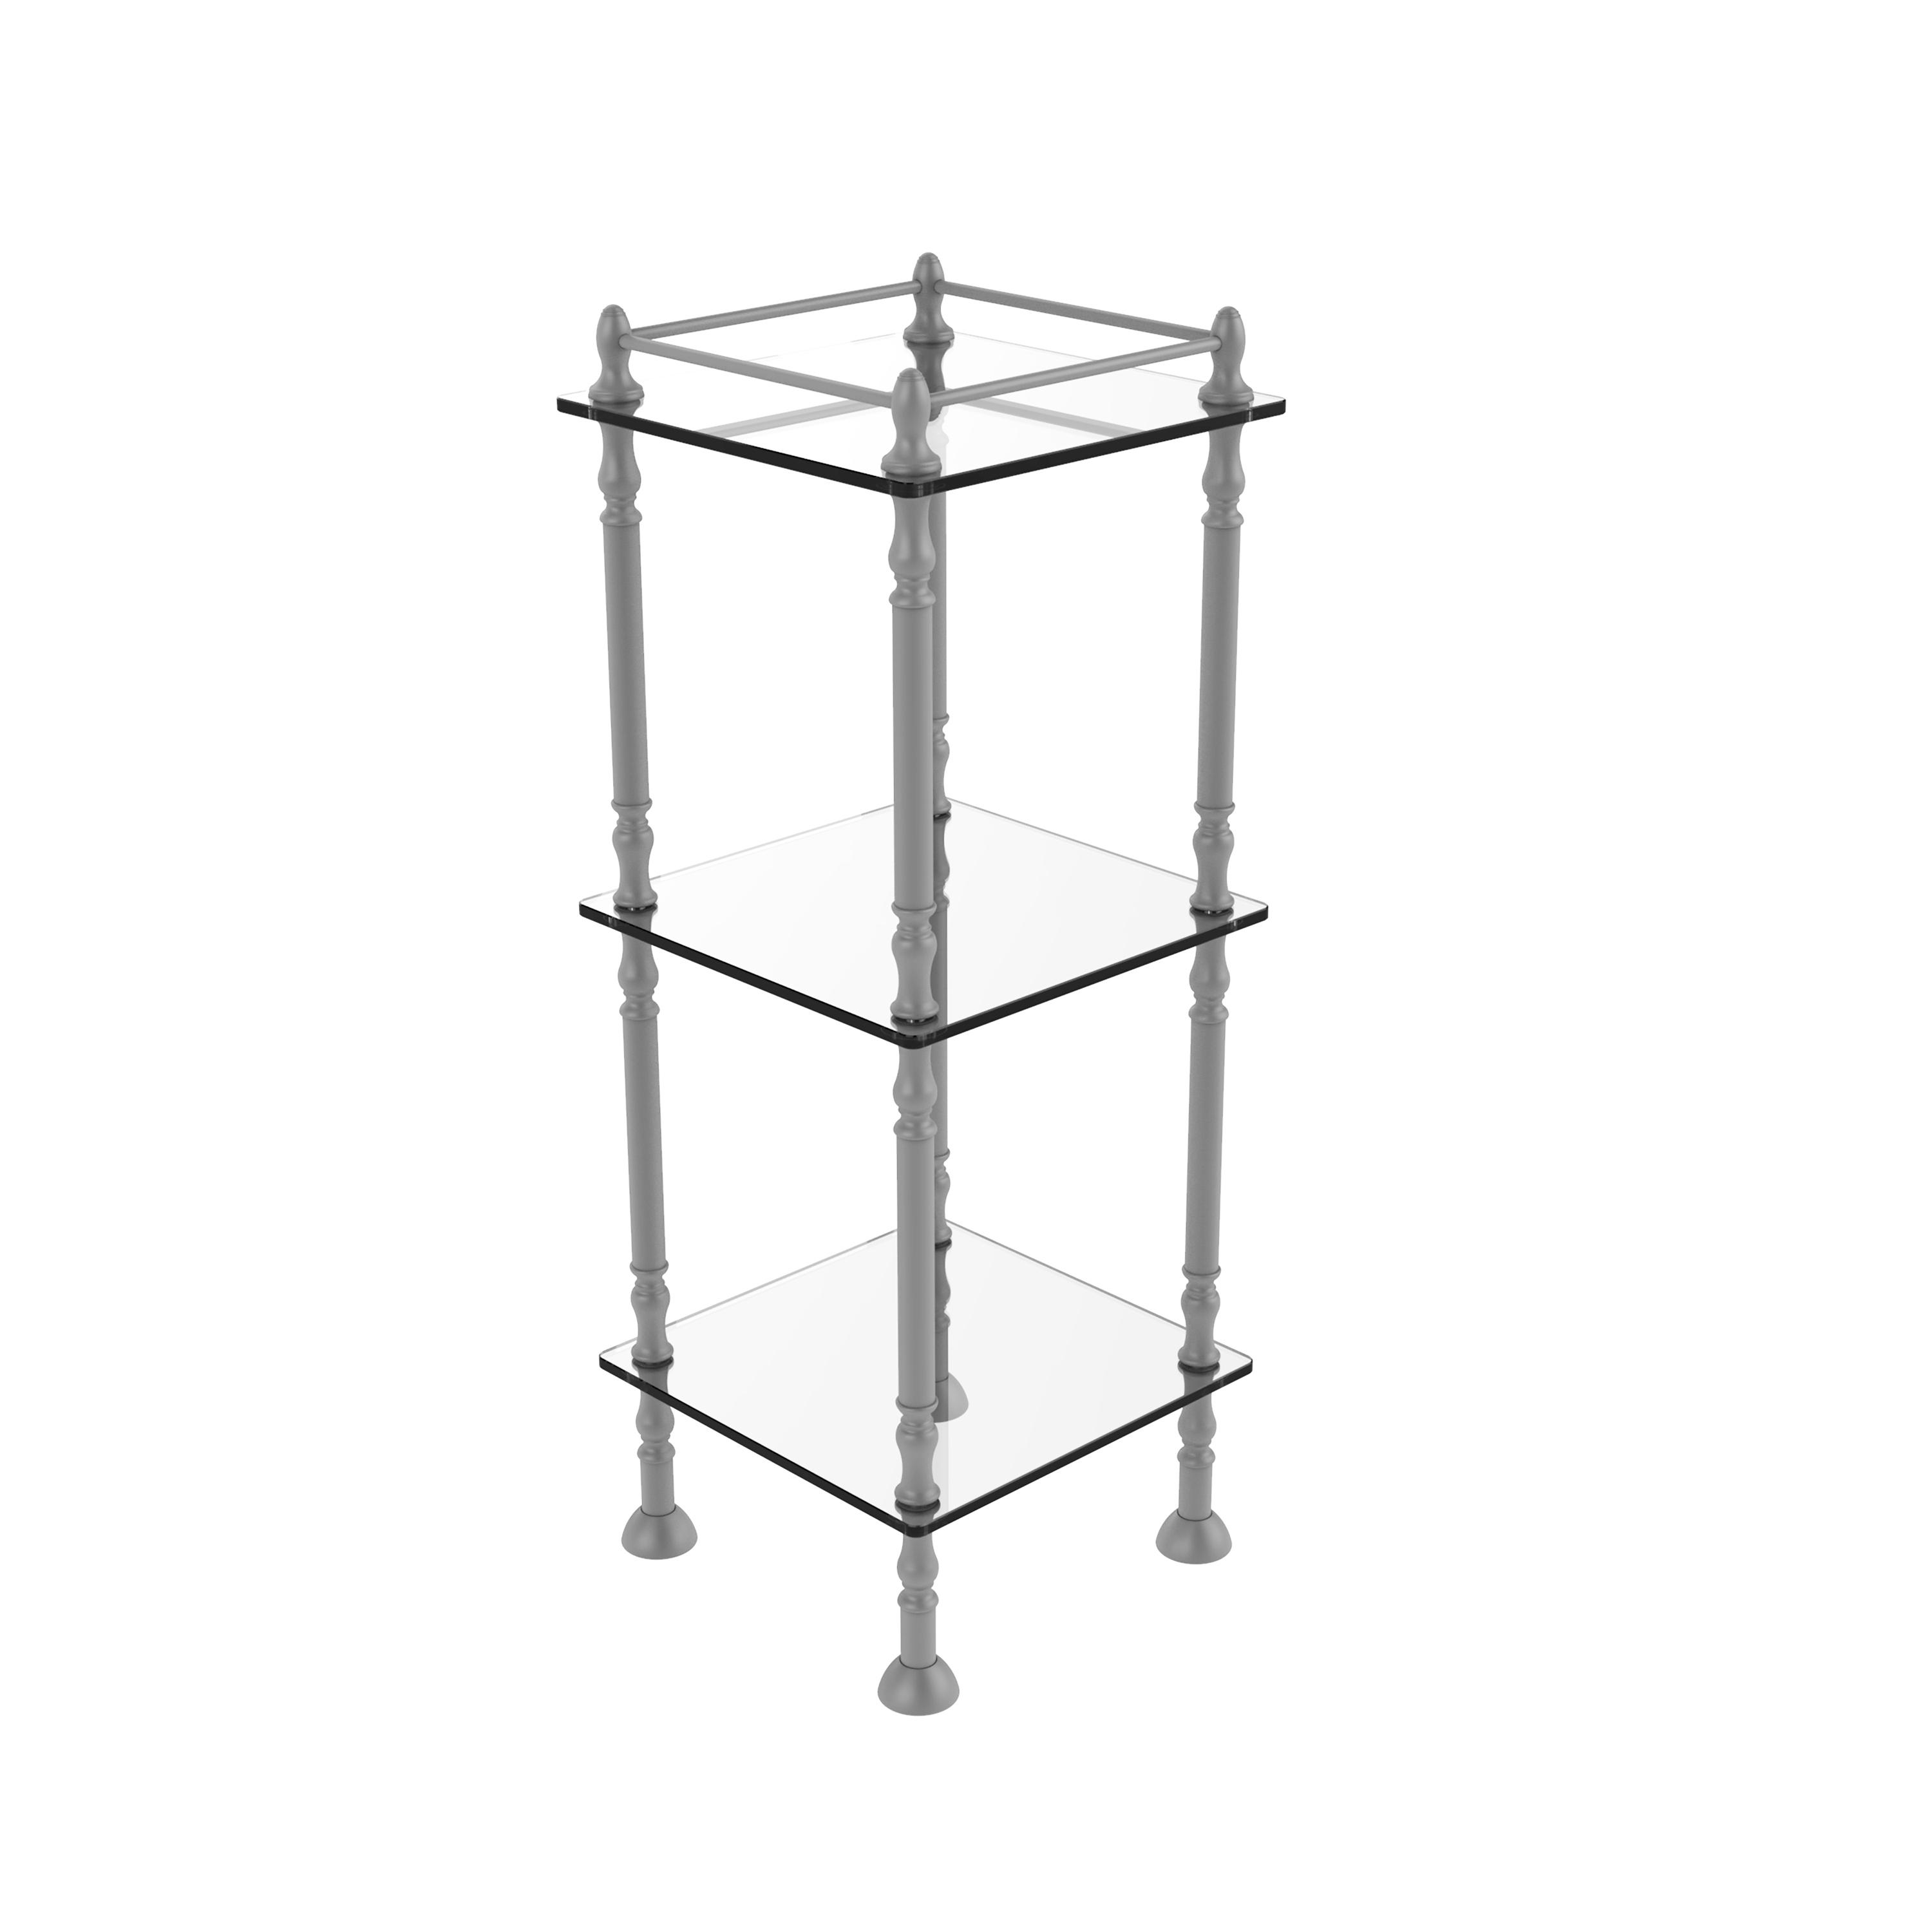 Three Tier Etagere With 14 Inch X 14 Inch Shelves - Et-14x143tgl-gym